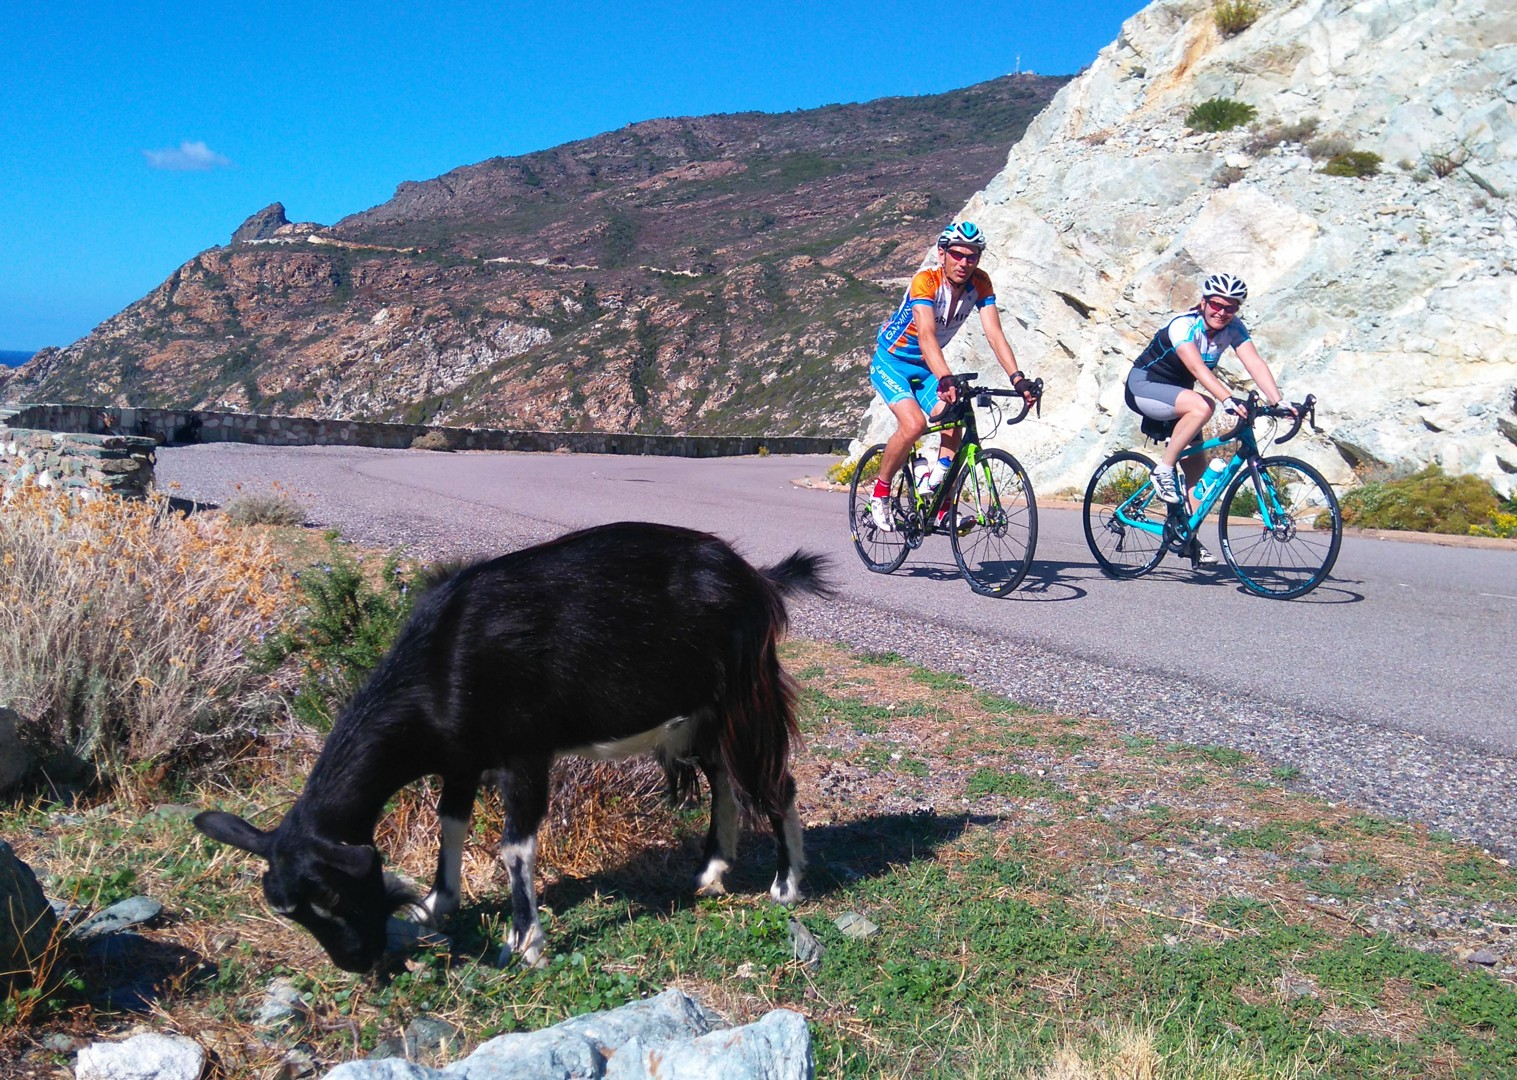 guided-road-cycling-holiday-in-france.jpg - France - Corsica - Southern Secrets - Guided Road Cycling Holiday - Road Cycling